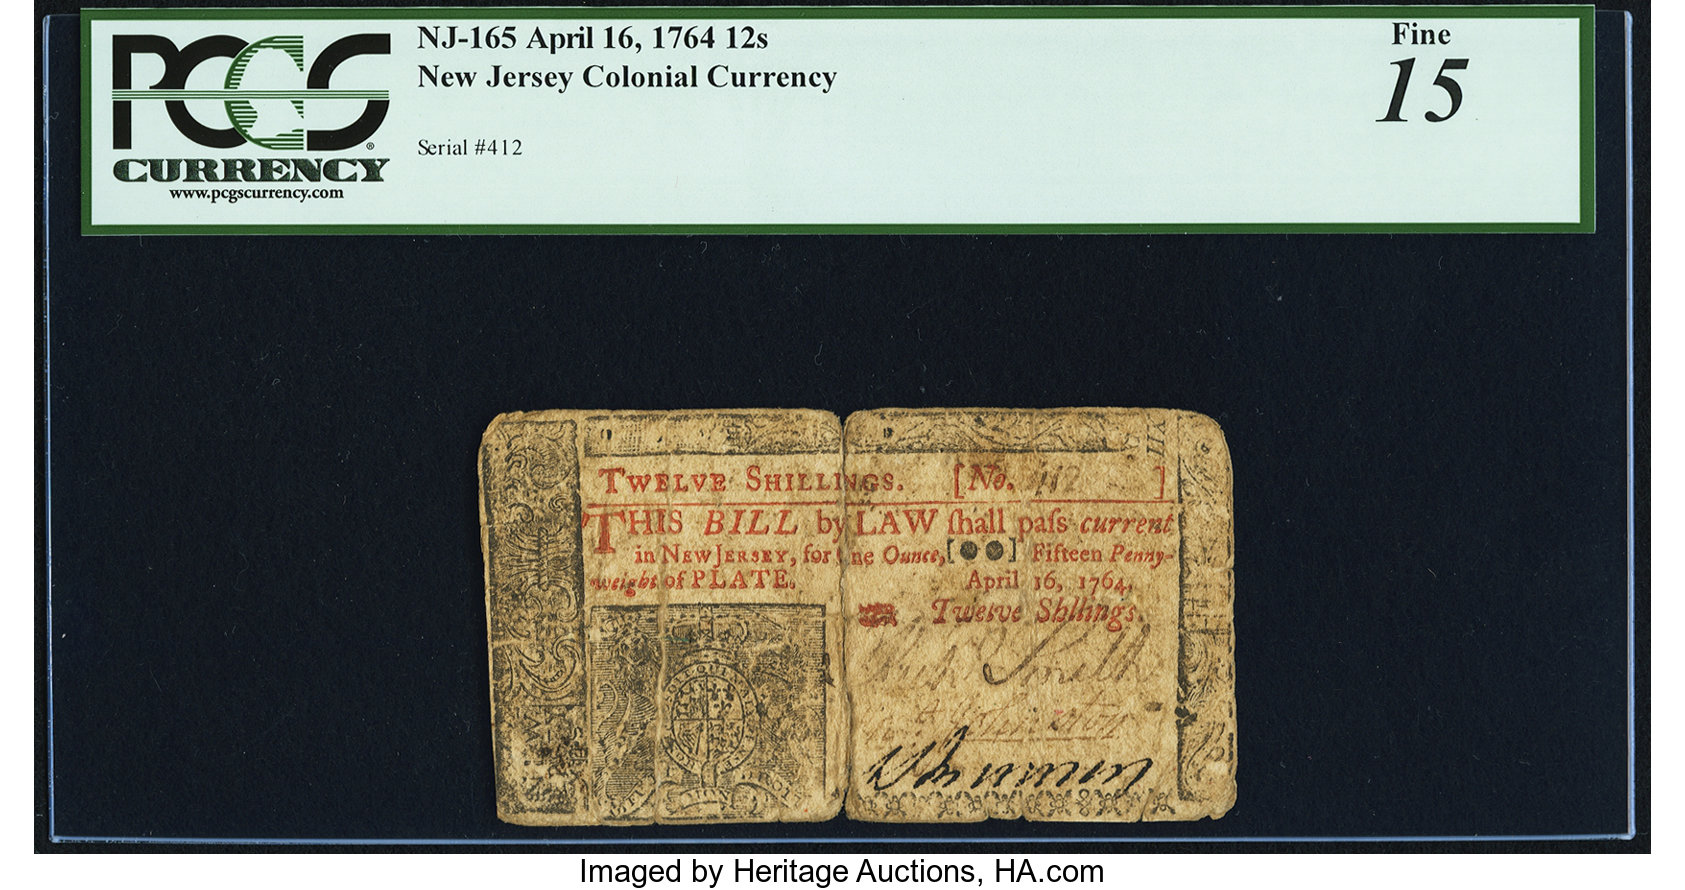 sample image for 1764